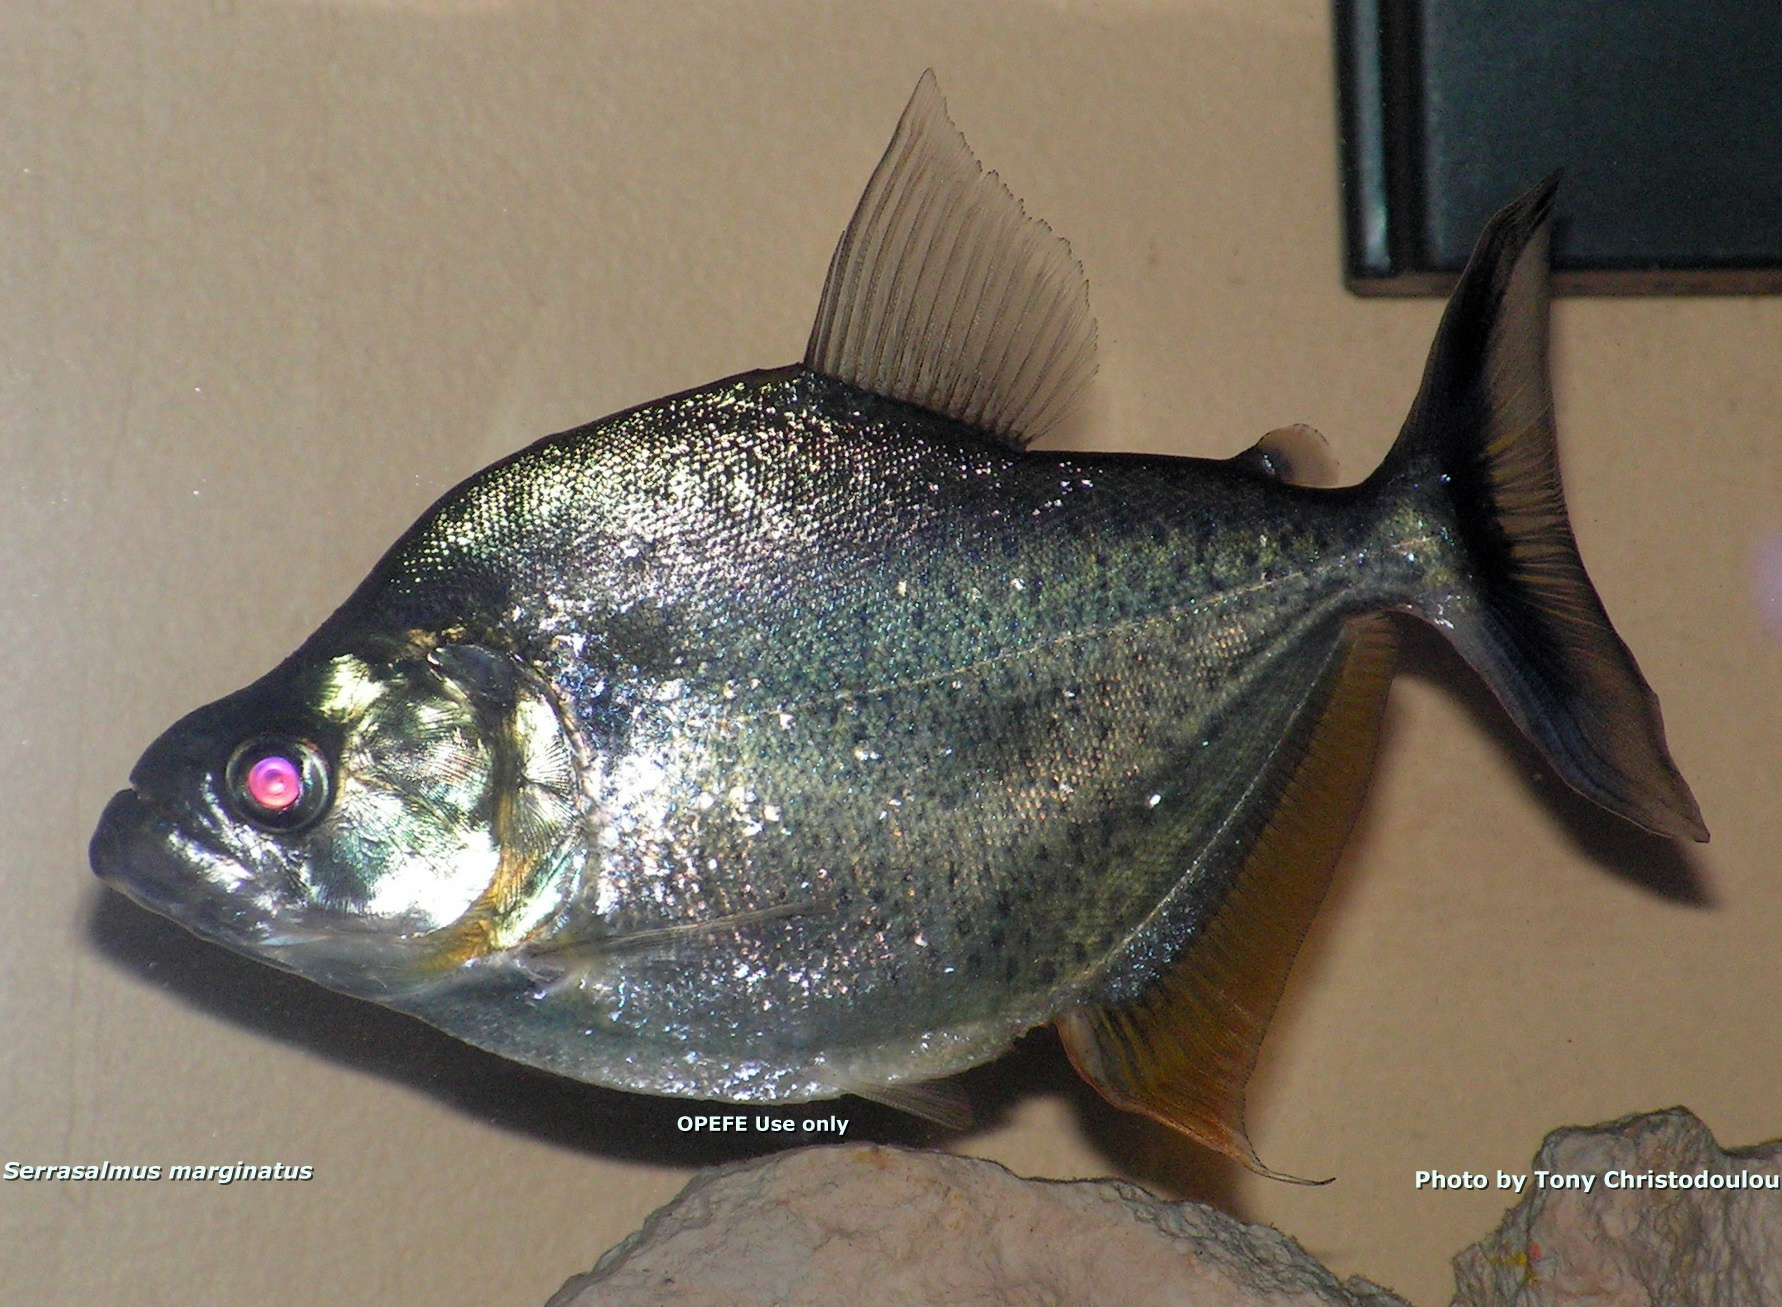 Serrasalmus Marginatus Spotted Piranha